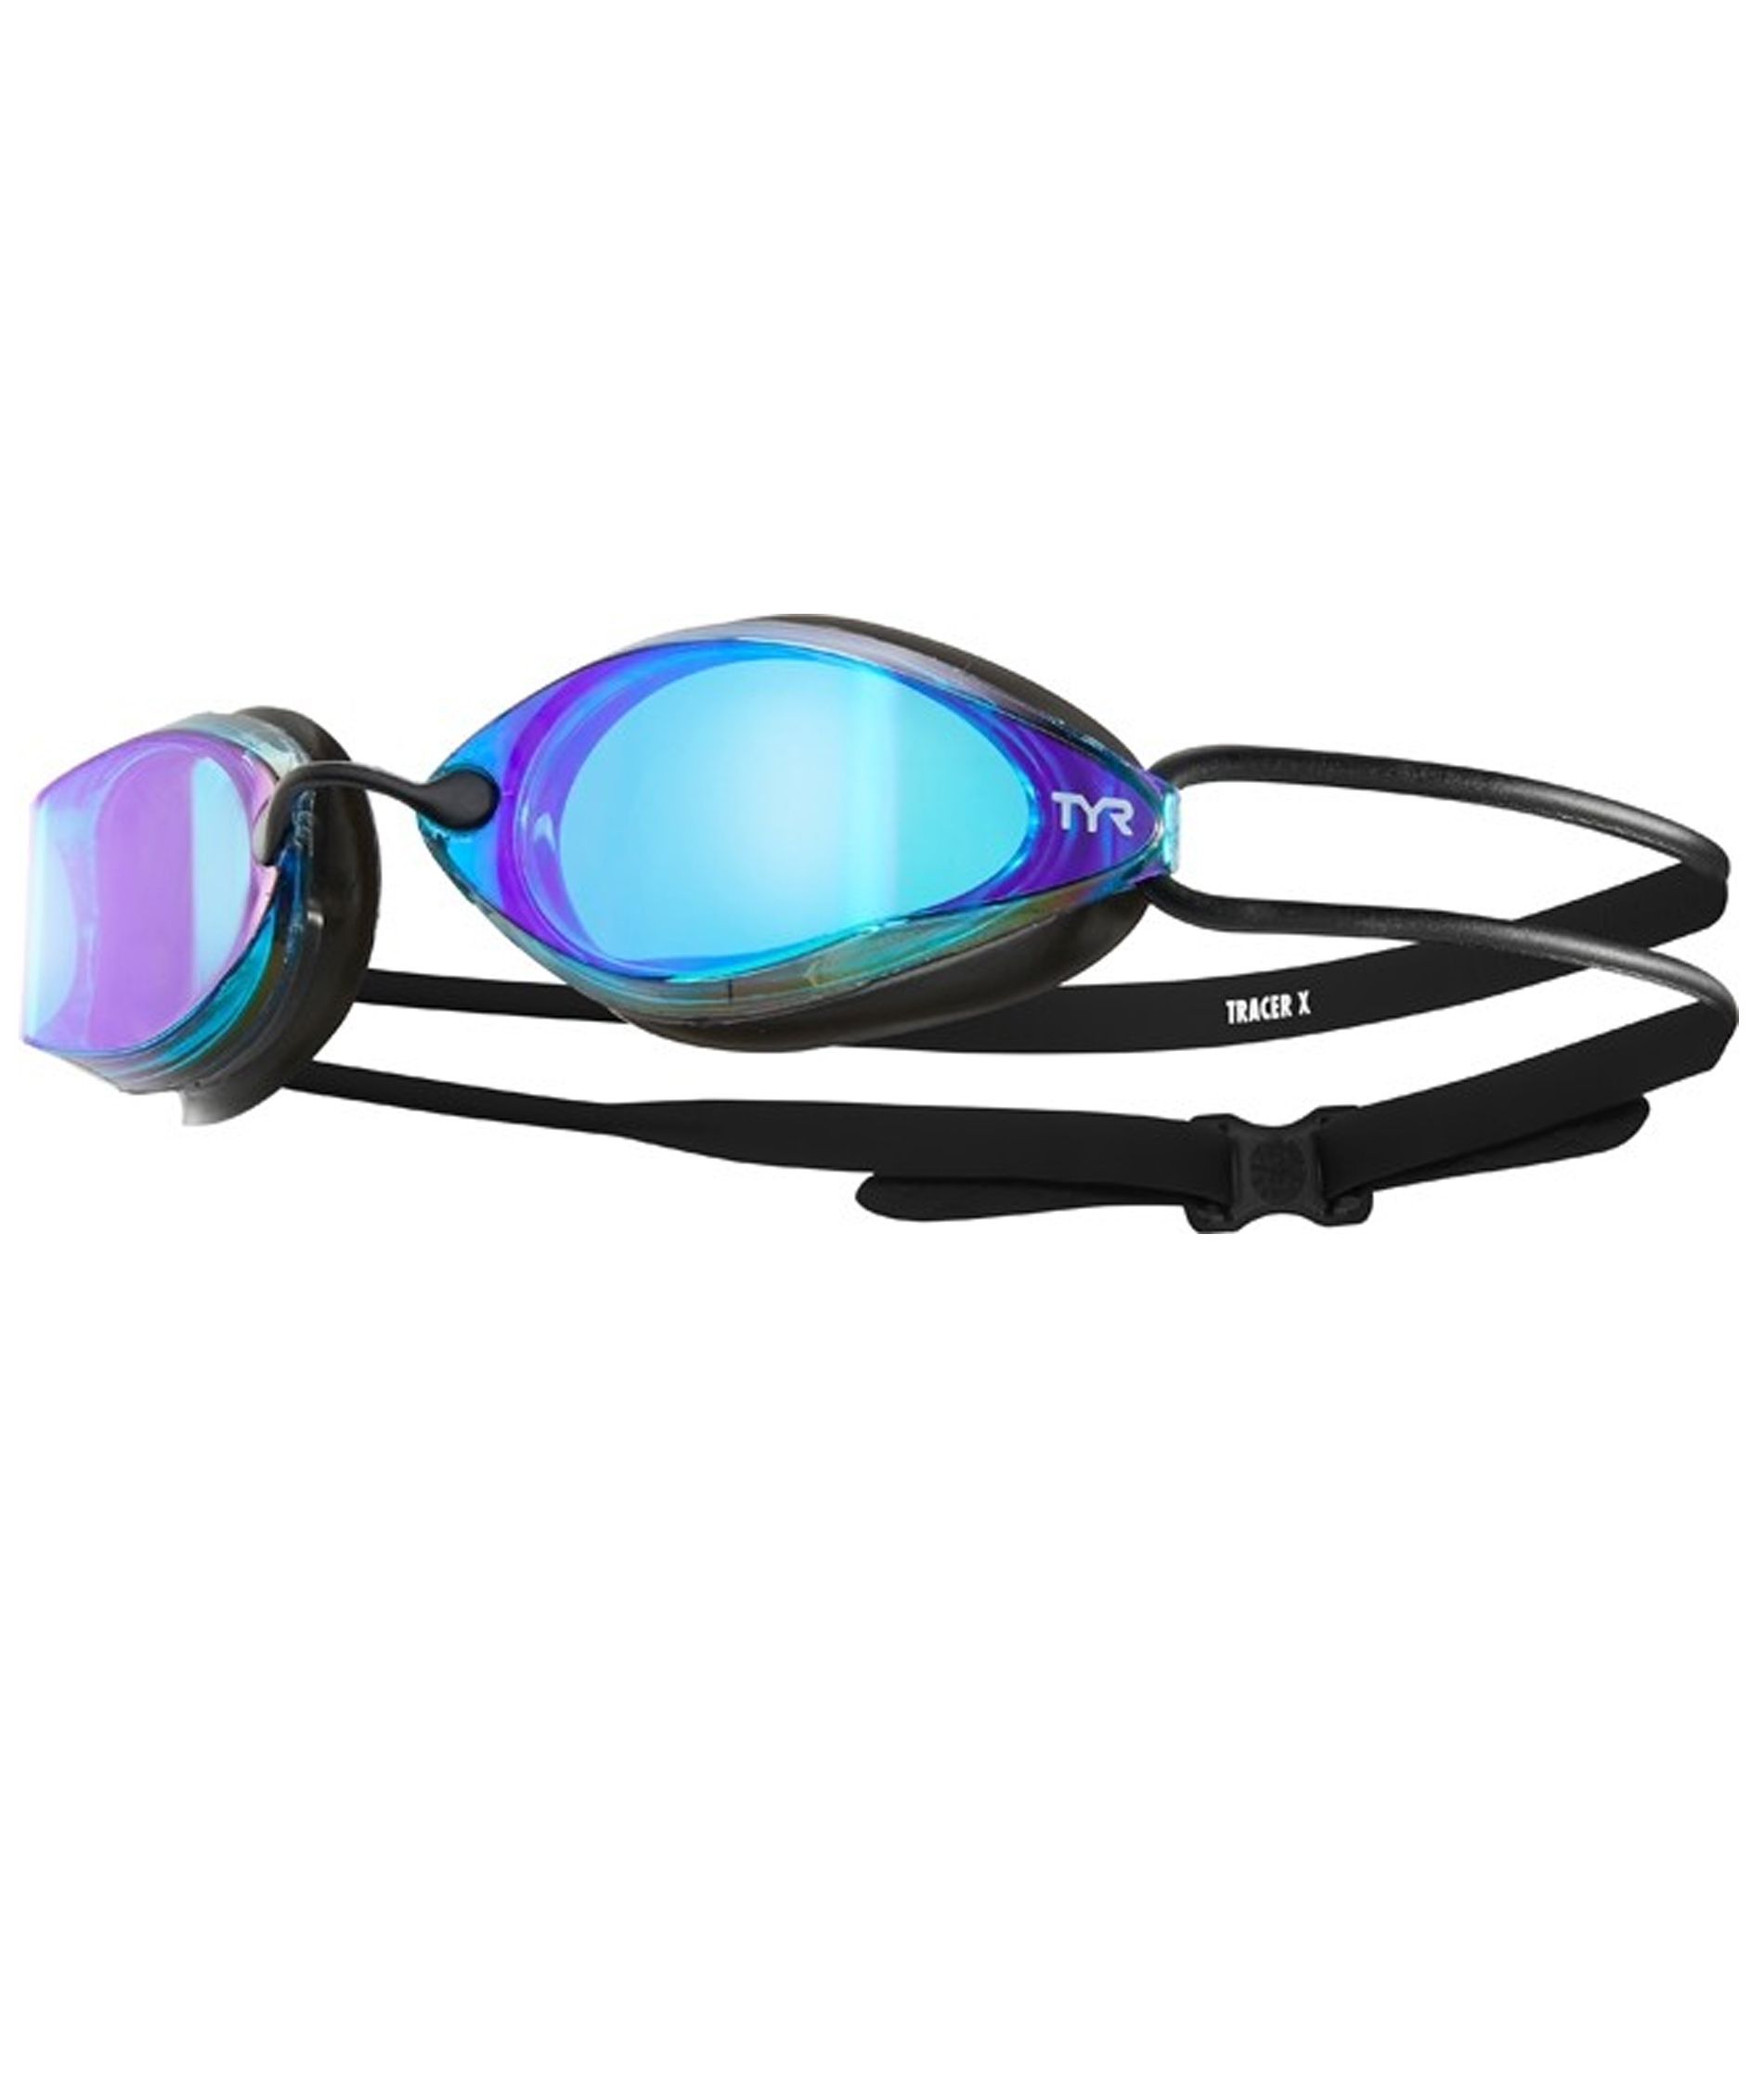 TYR Tracer-X Racing Mirrored Adult Goggles - Blue/Black